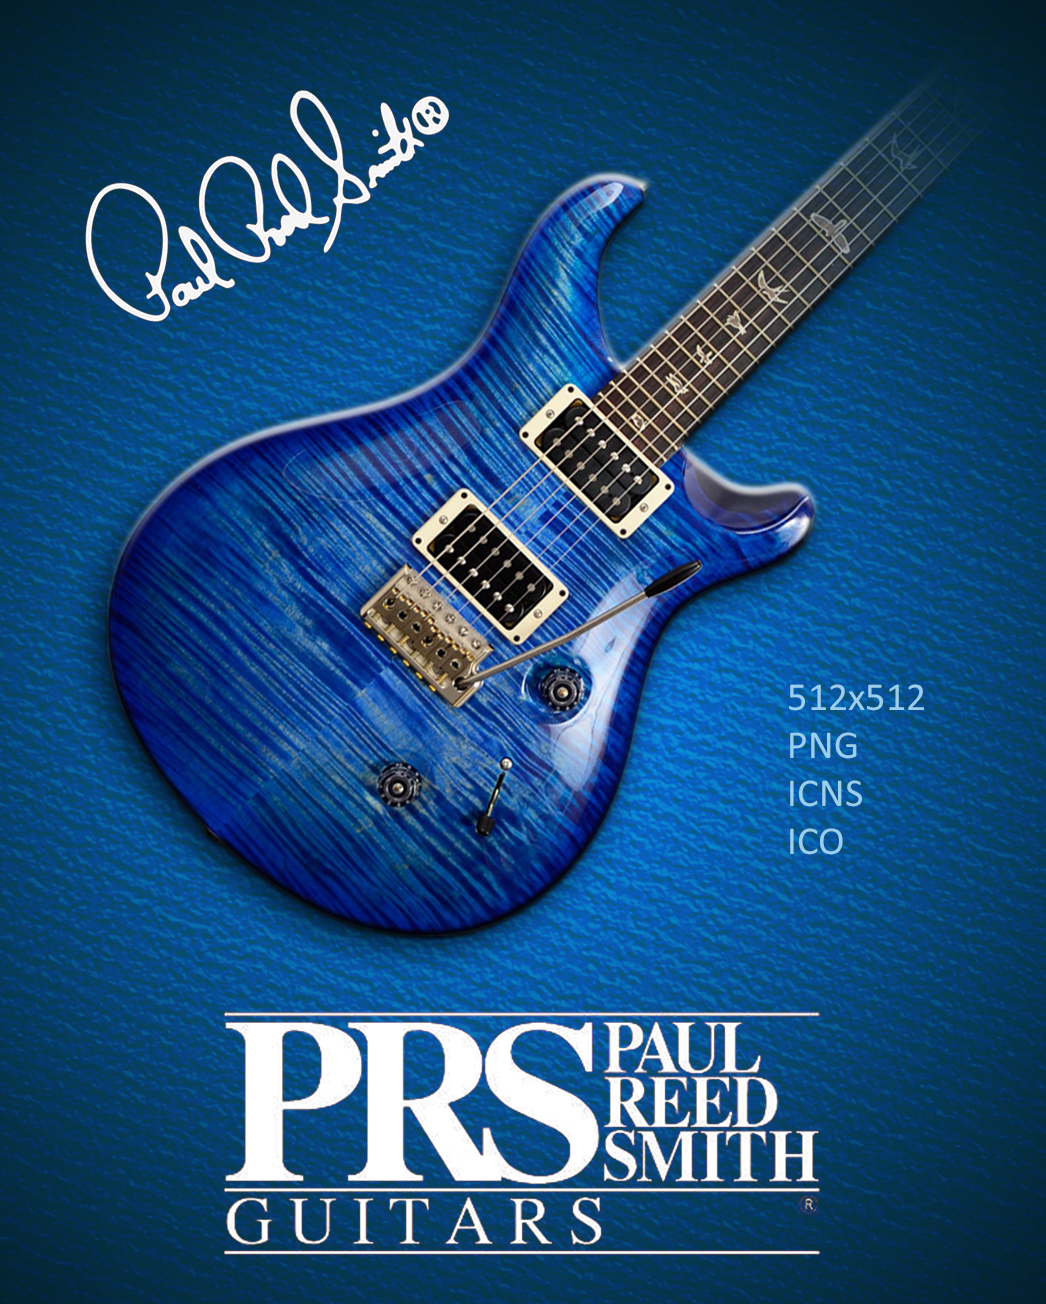 Paul Reed Smith Wallpaper